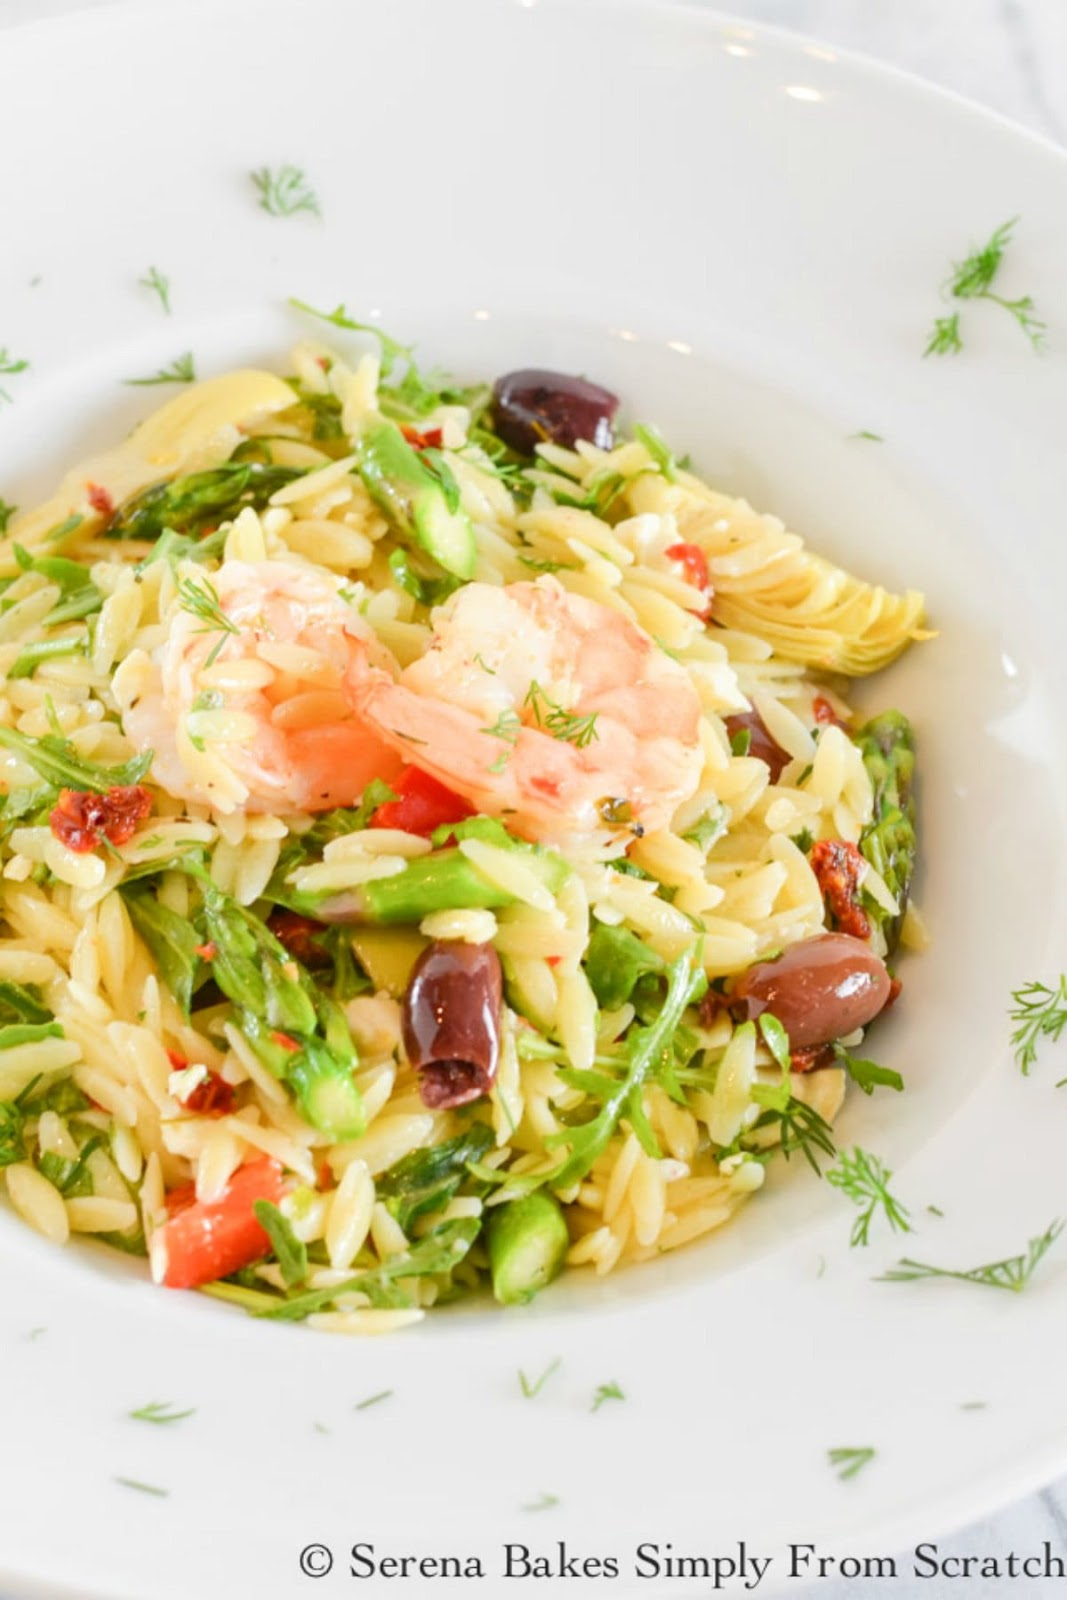 Roasted Shrimp Asparagus Orzo Pasta Salad is a summertime fav. It's loaded with artichoke hearts, sun-dried tomatoes, olives, feta cheese and arugula drizzled with lemon dill vinaigrette from Serena Bakes Simply From Scratch.